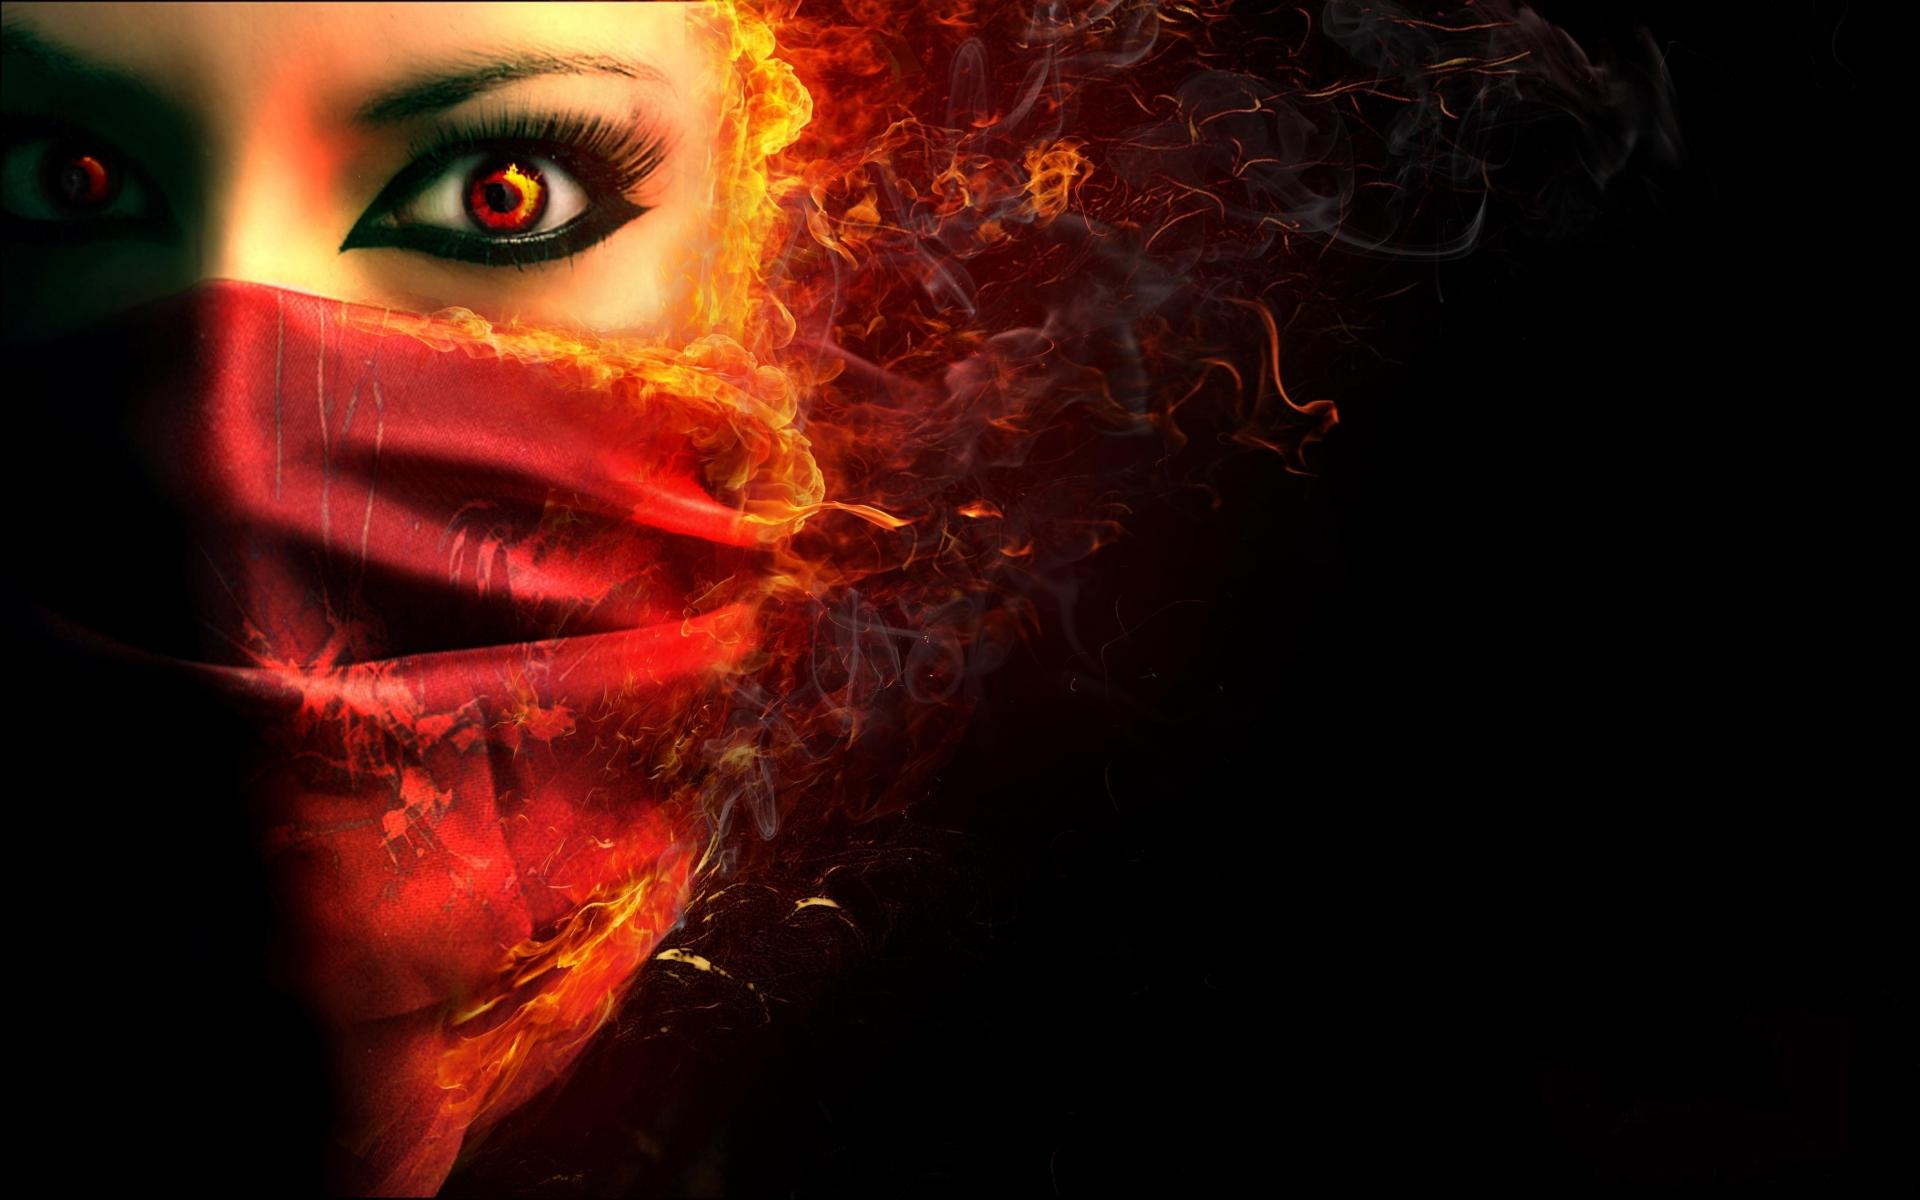 Steampung Girl Holding Skull Wallpaper Bandit Women On Fire Wallpapers Hd Desktop And Mobile